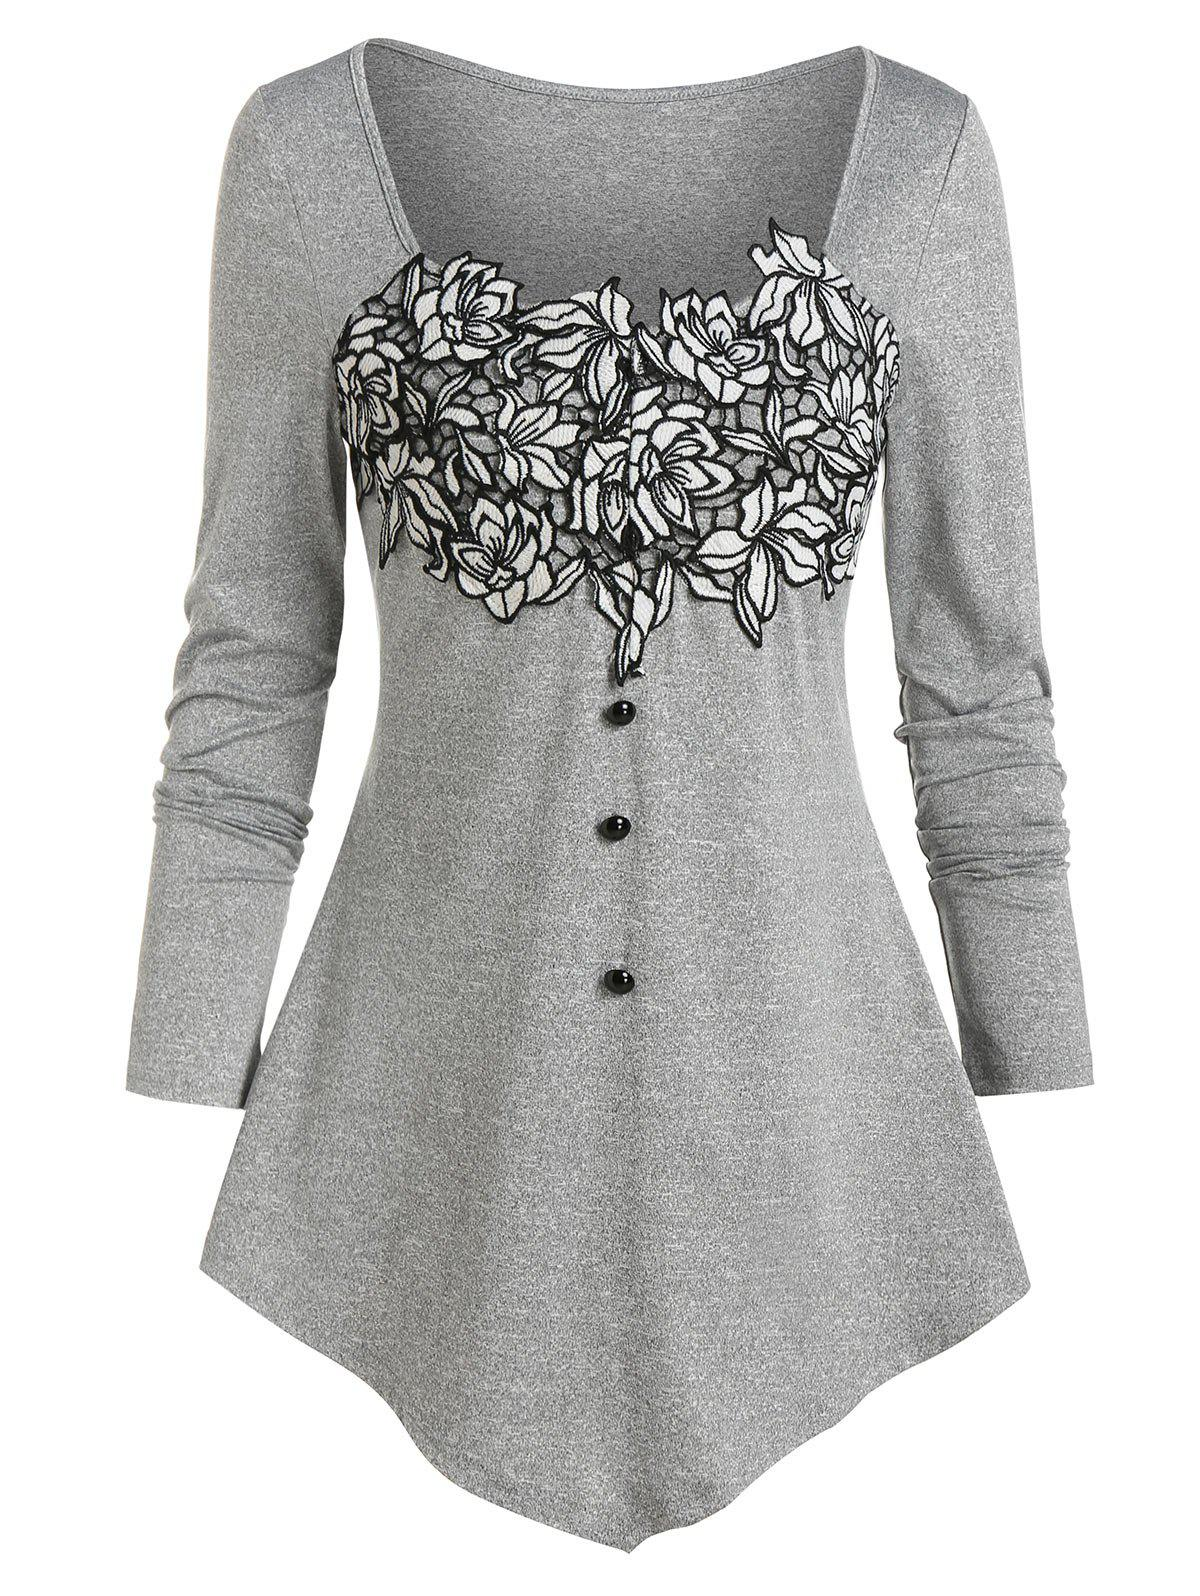 New Pointed Hem Flower Lace Panel T-shirt